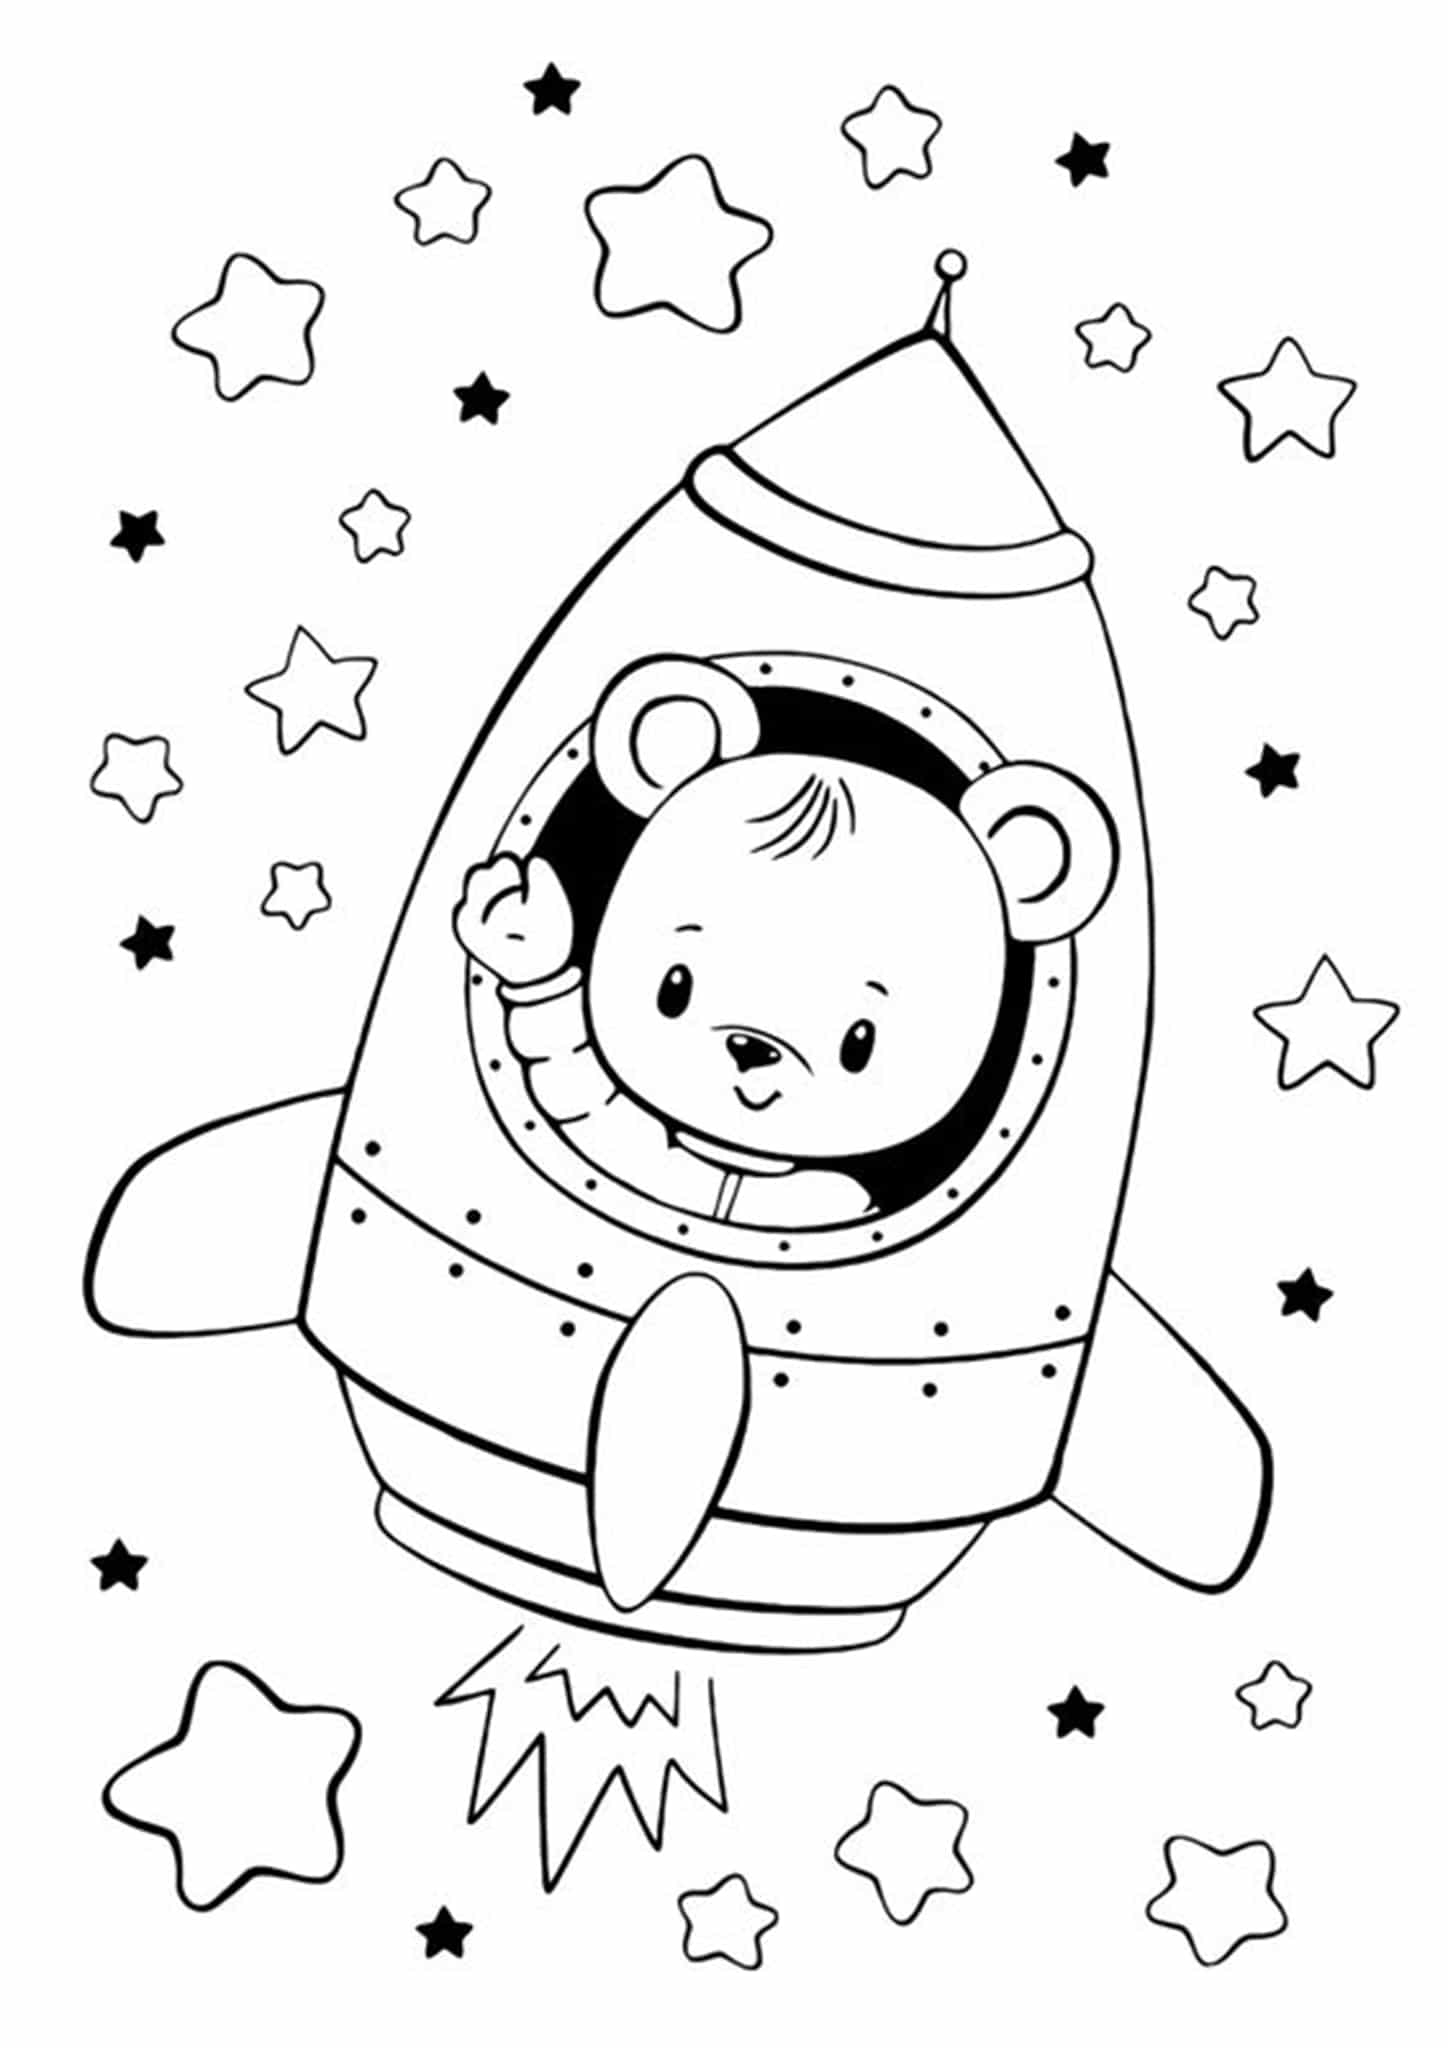 cute easy coloring pages coloring pages cute and easy coloring pages free and coloring pages easy cute 1 1